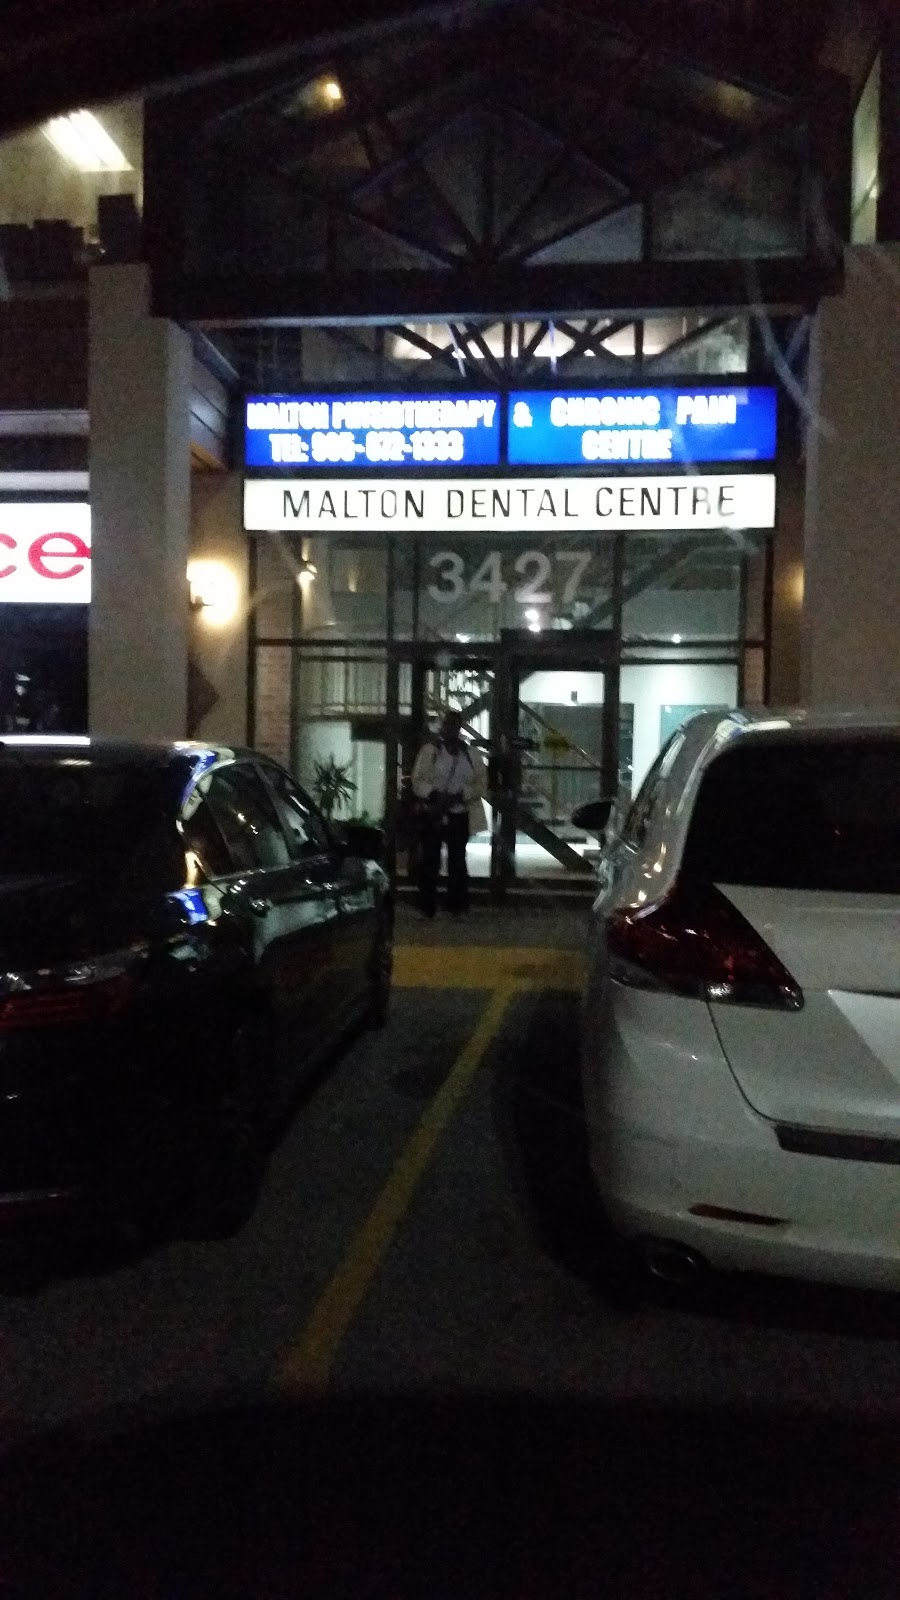 Chagger Dental Clinic Mississauga | dentist | 3427 Derry Rd E, Mississauga, ON L4T 4H7, Canada | 9056722244 OR +1 905-672-2244